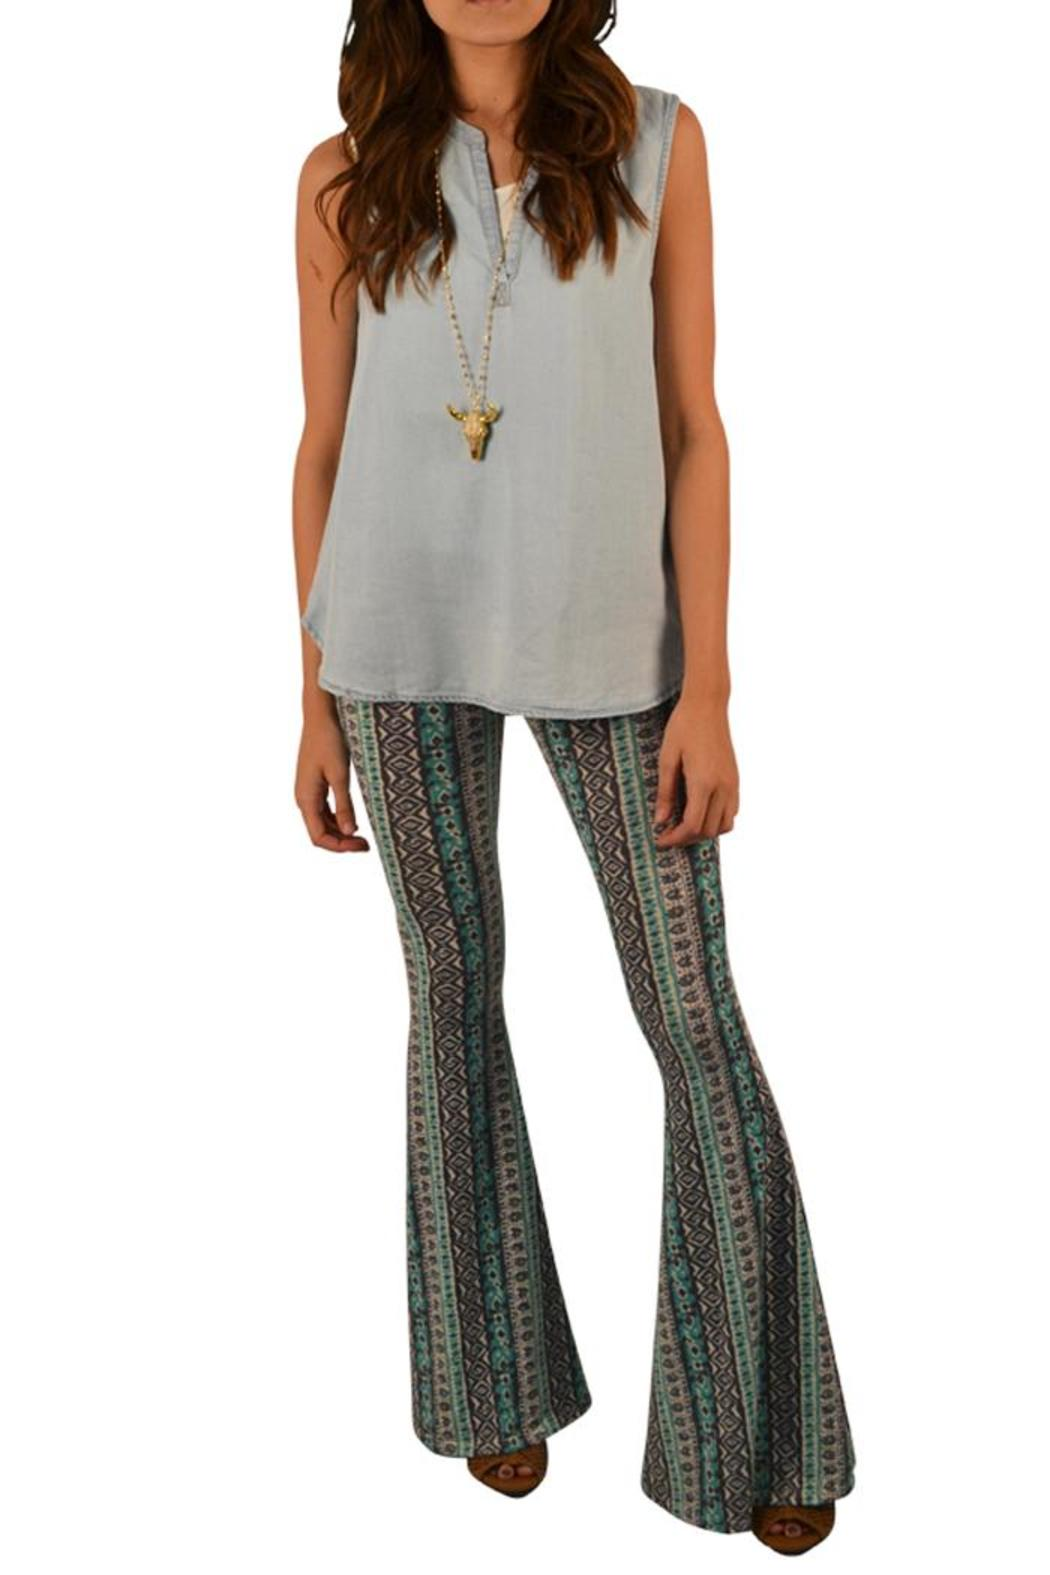 Ppla Clothing Printed Flare Pant From Lafayette By